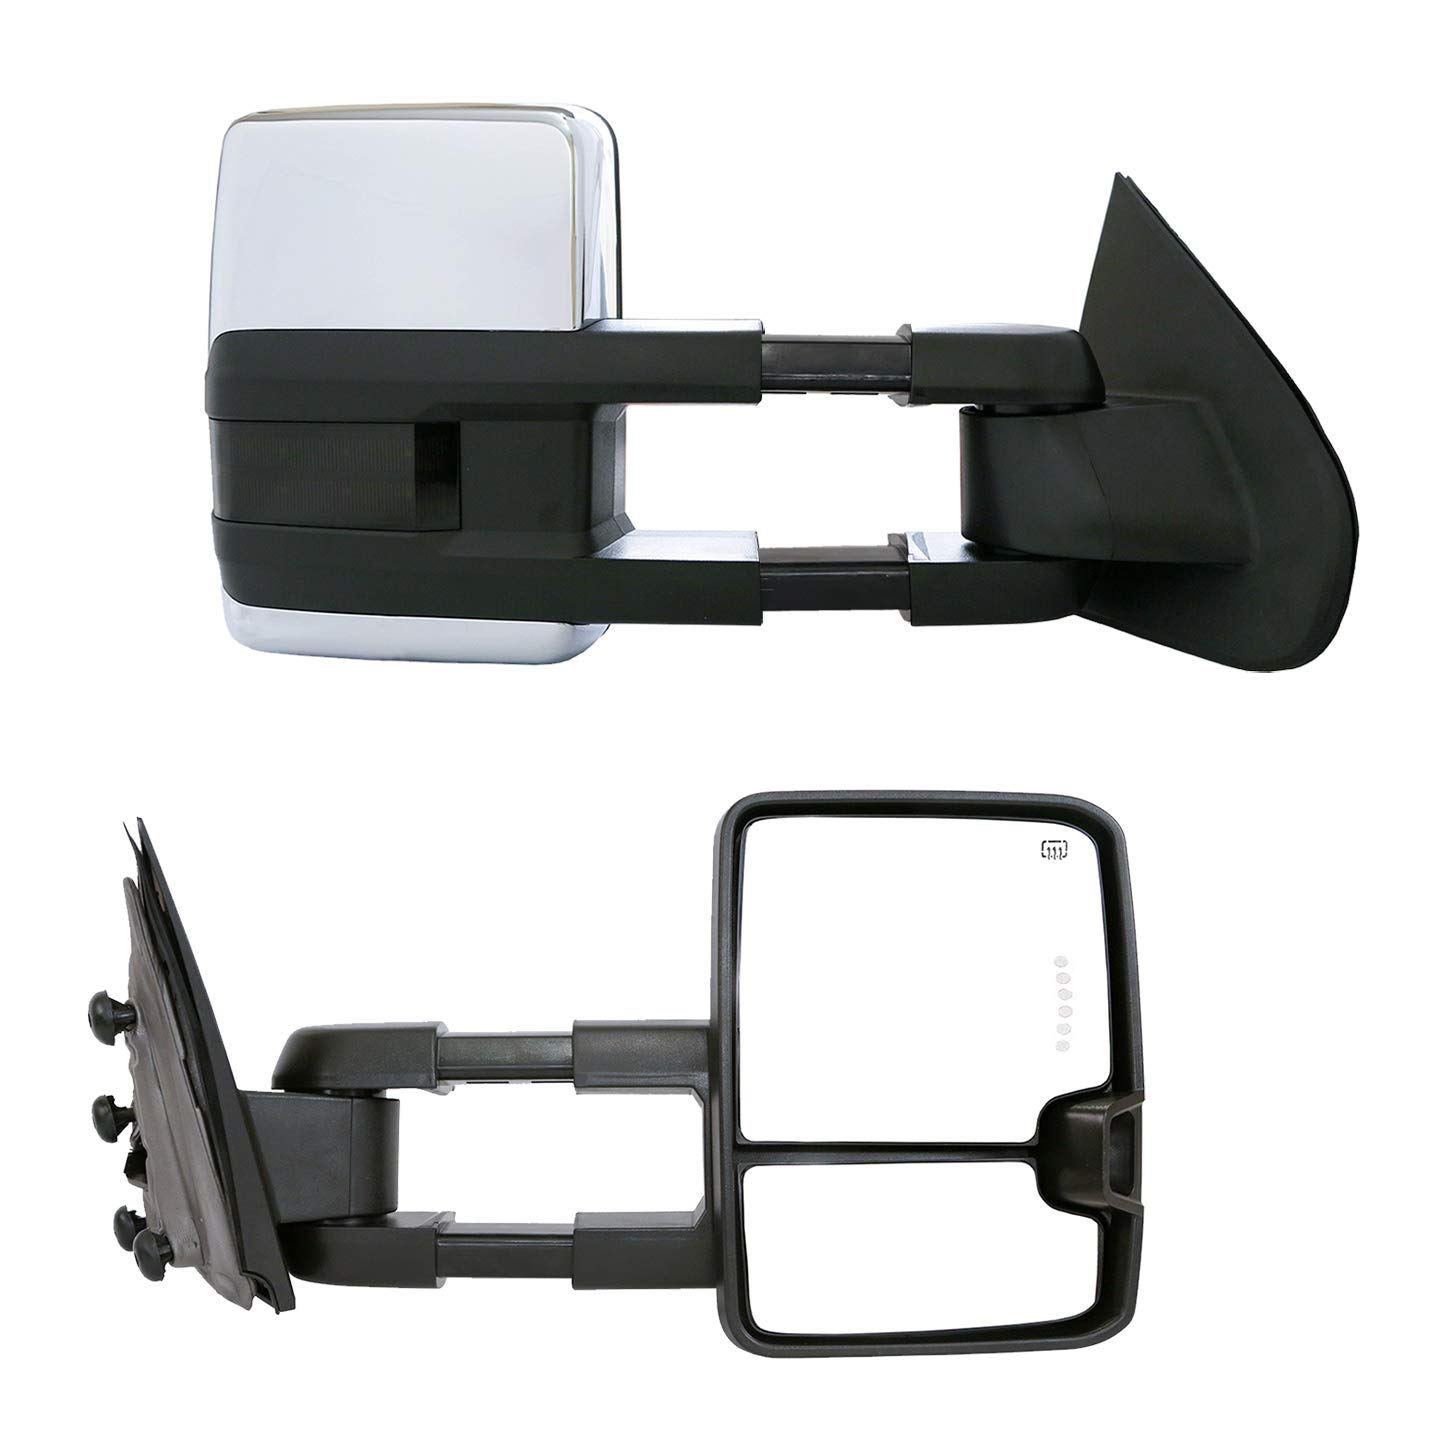 Paragon Telescopic Towing Mirrors for 2014-18 Chevy Silverado//GMC Sierra 1500 /& 2015-18 Silverado//Sierra 2500//3500 Heated Powered Black Pair Set